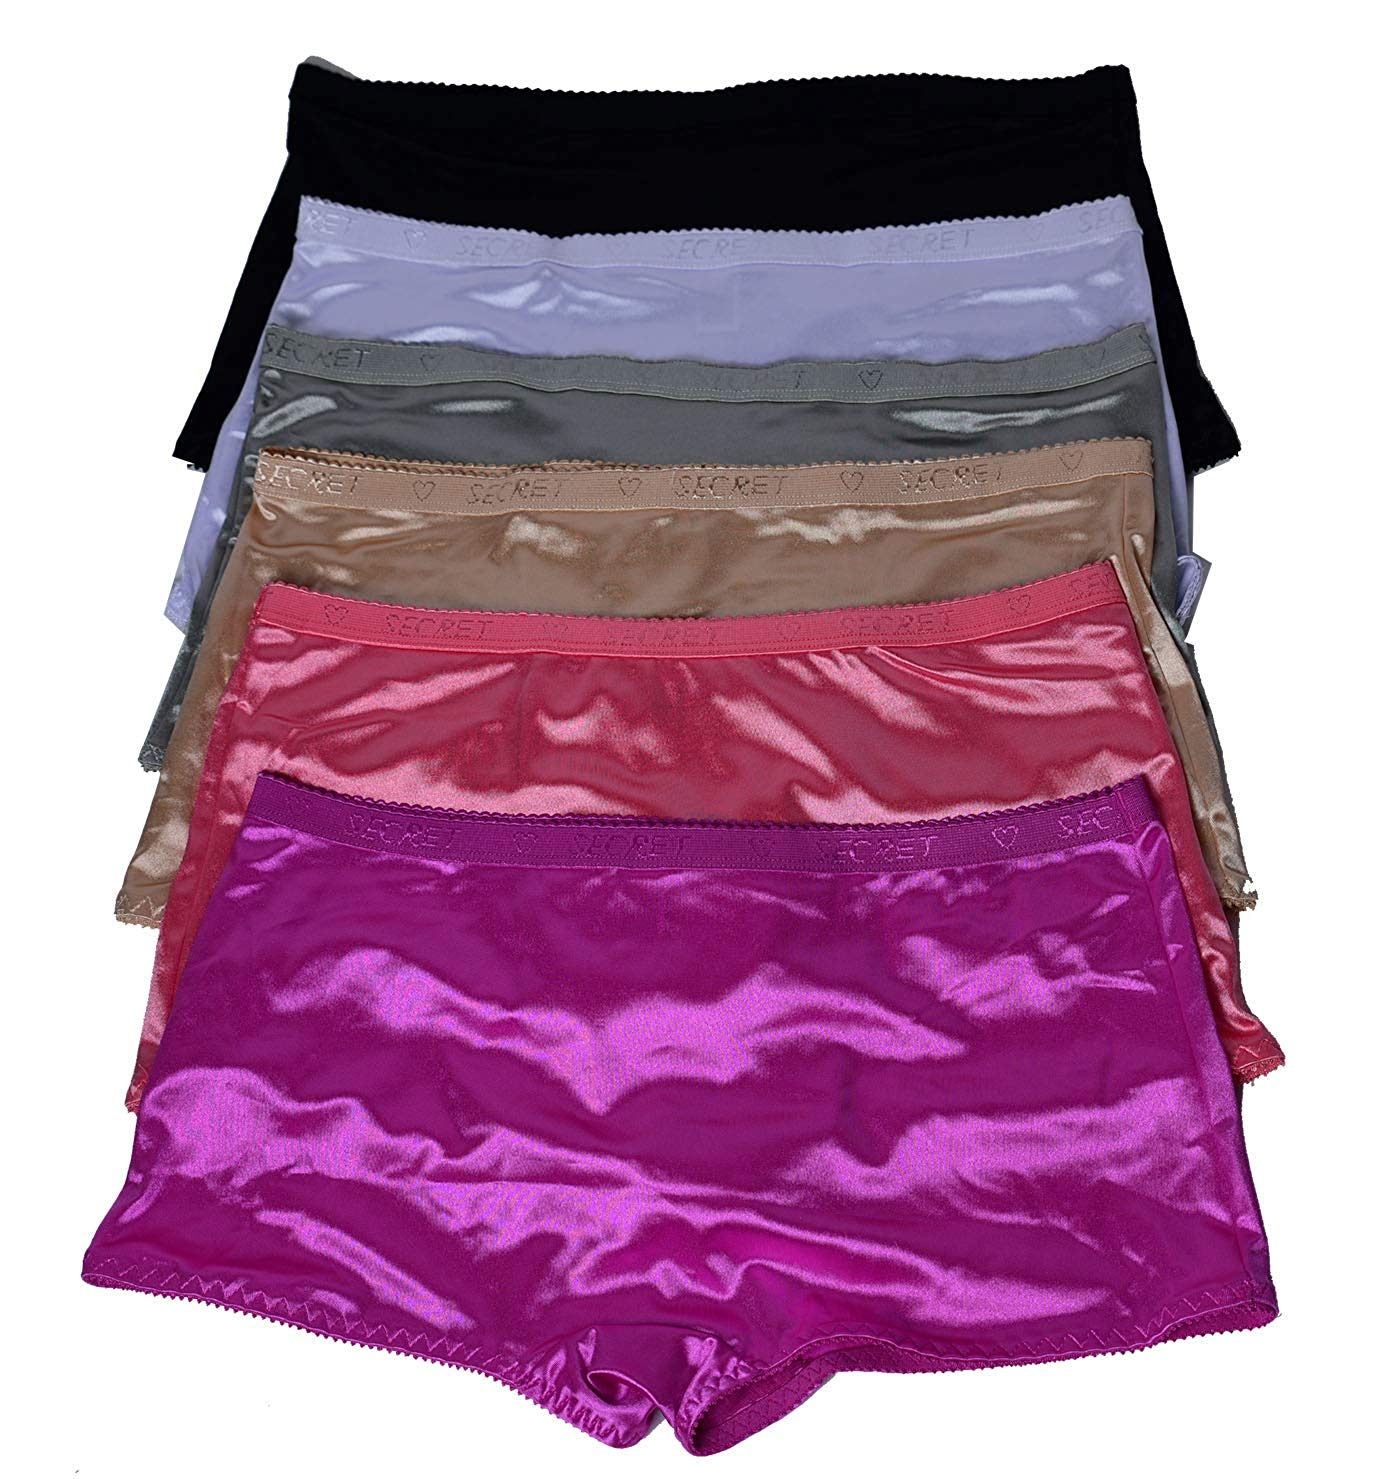 208c3cf05dd1 Get Quotations · Emily Johnson Women Satin Boxer 6 Pack of Plain Satin  Underwear